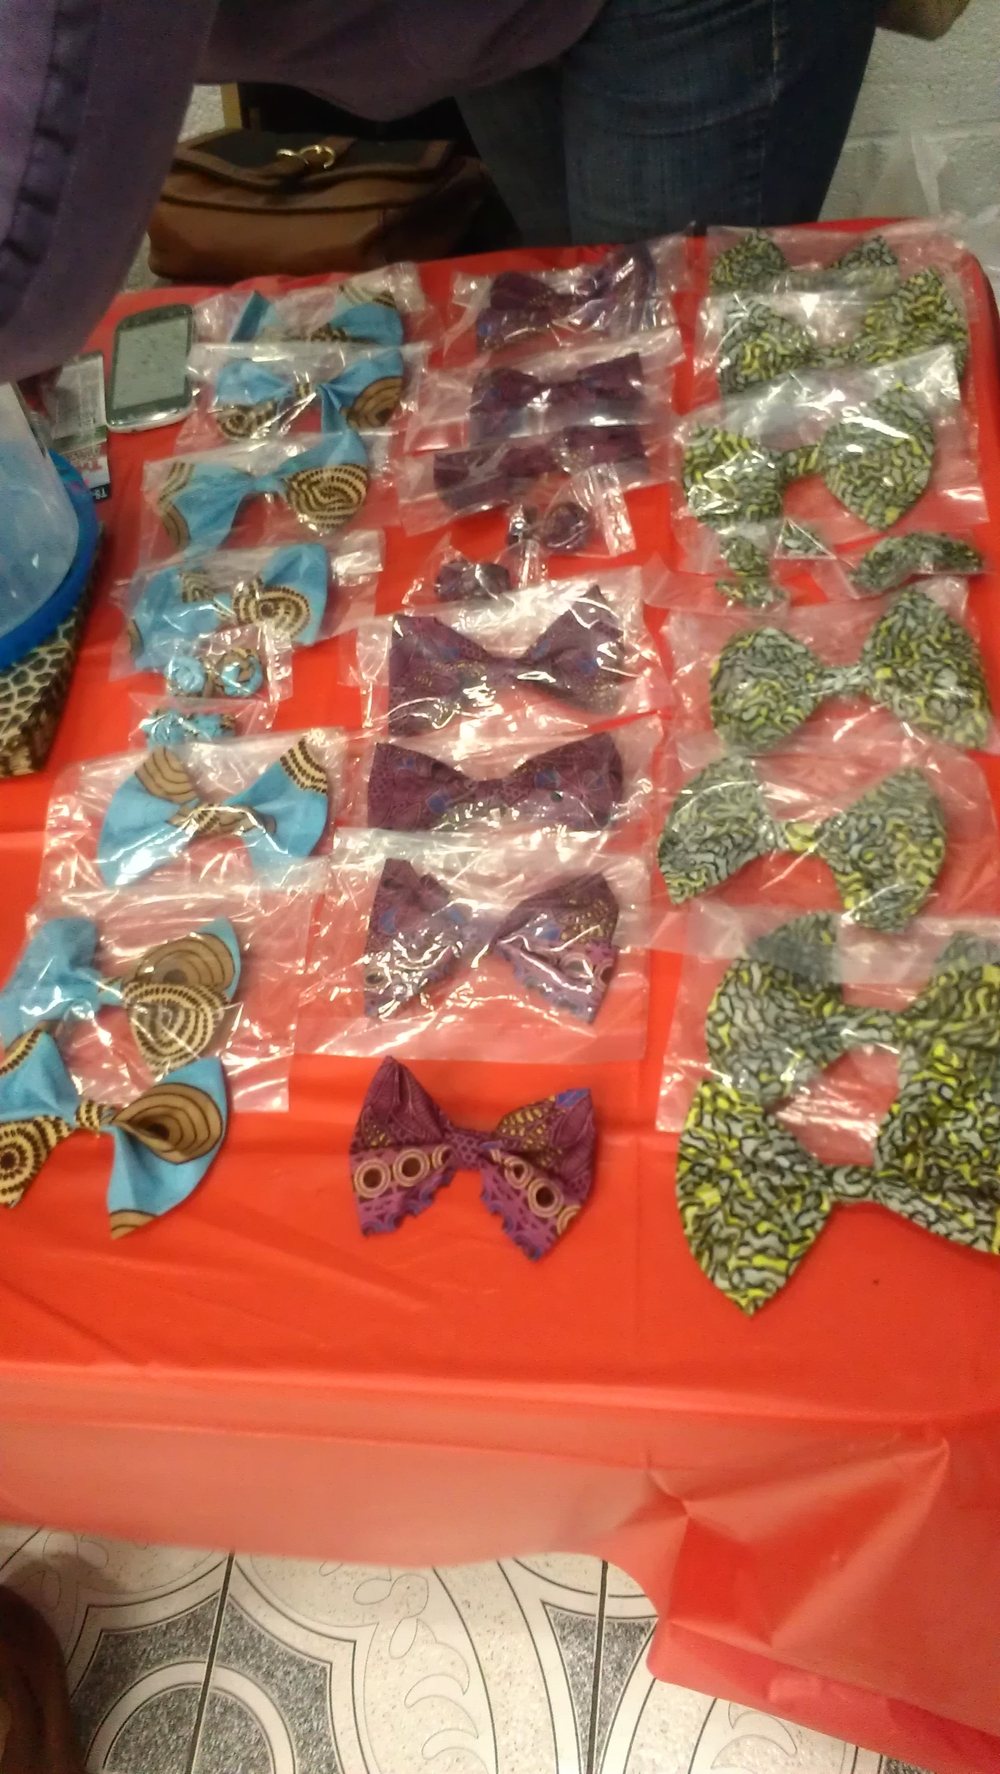 Some of the products on her vendor table